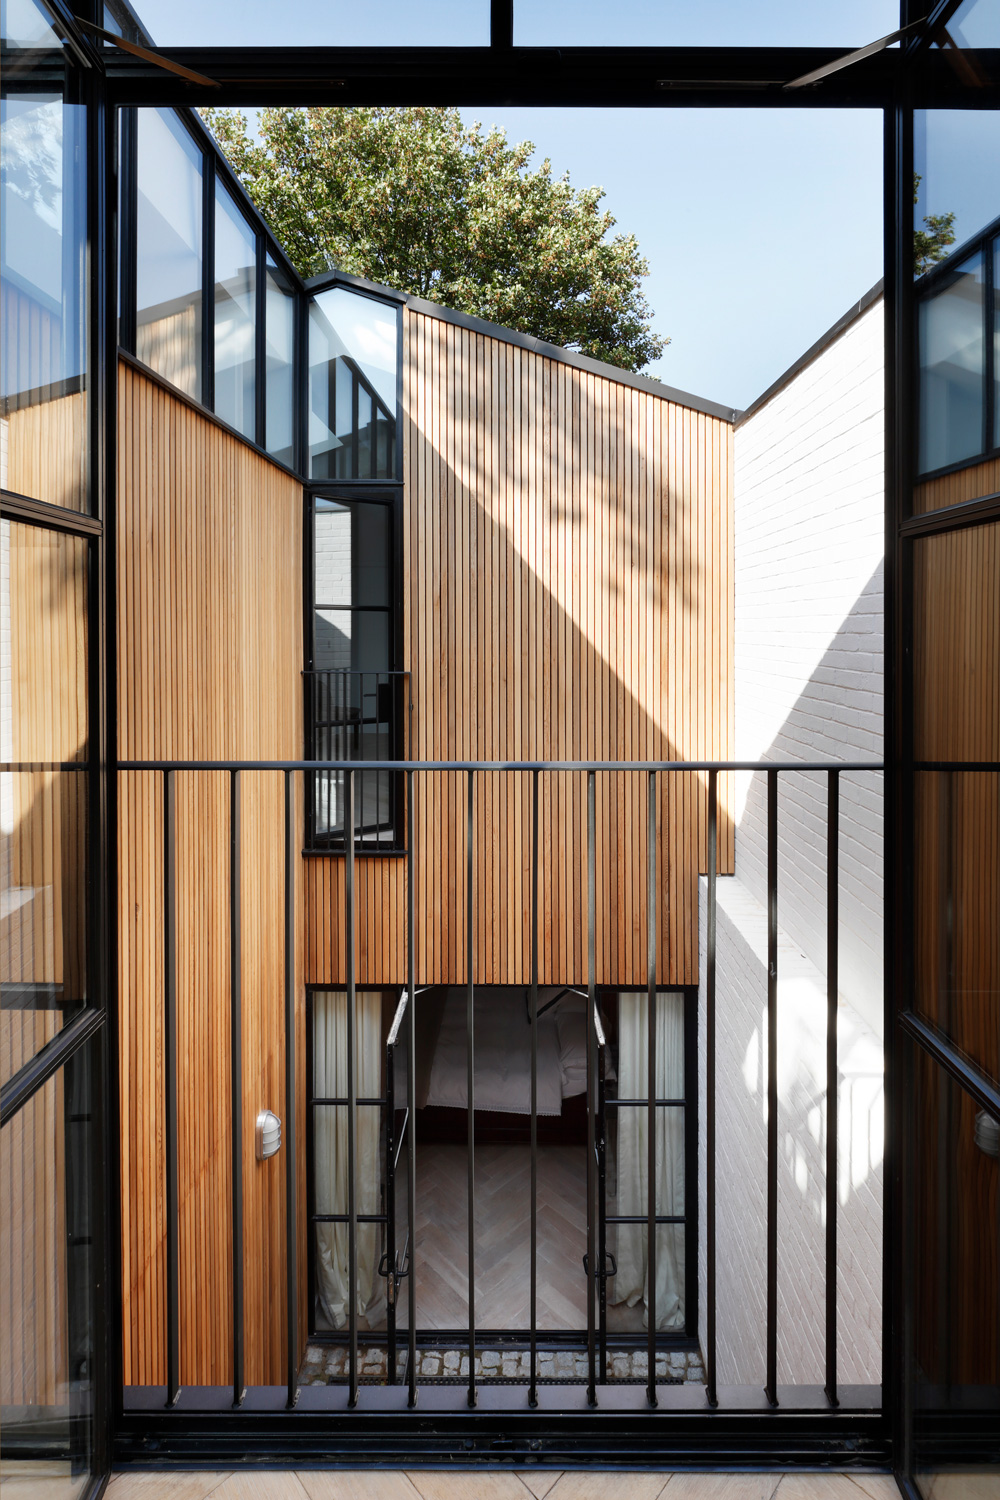 Complete redesign & refurbishment of a Victorian period conversion house in Holland Park, completed to a high specification with careful detailing and material finishes.